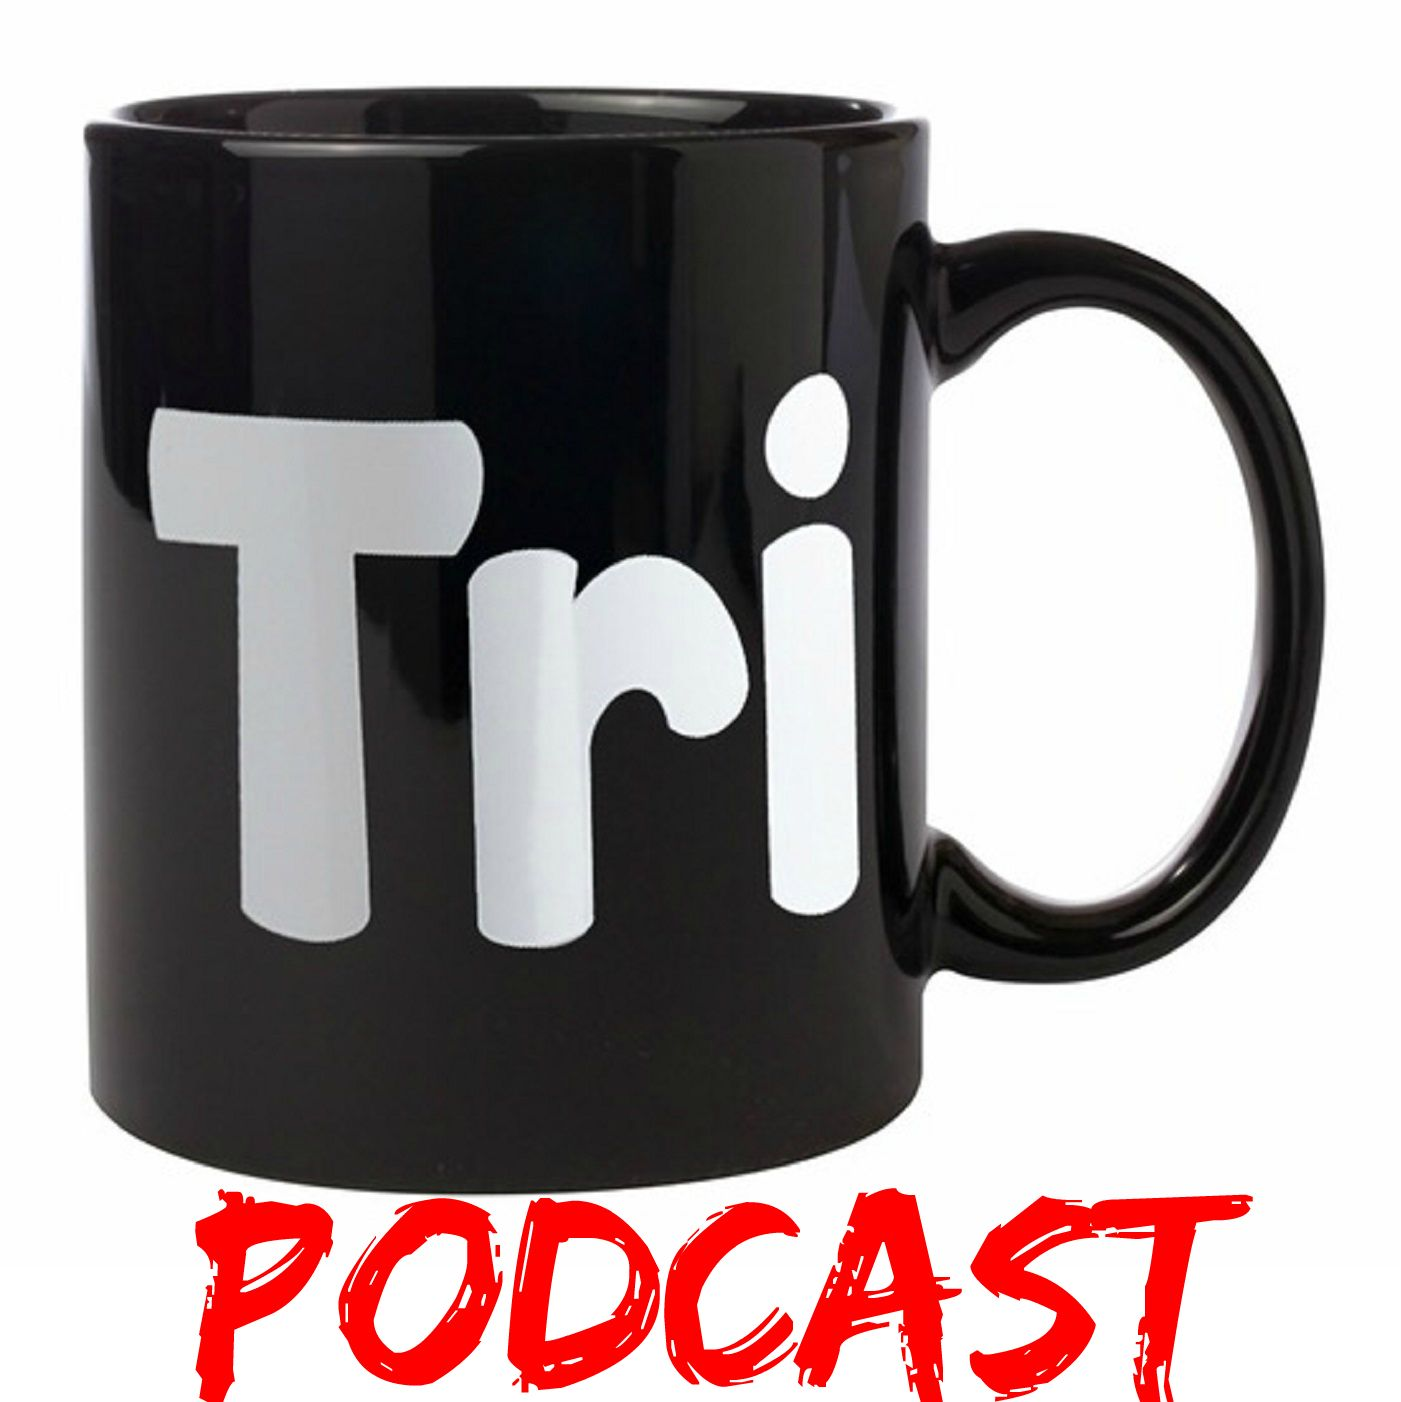 Cup Of Tri Triathlon Podcast, with Coach Rob Wilby and Helen Murray - Triathlon coaching by oxygenaddict.com